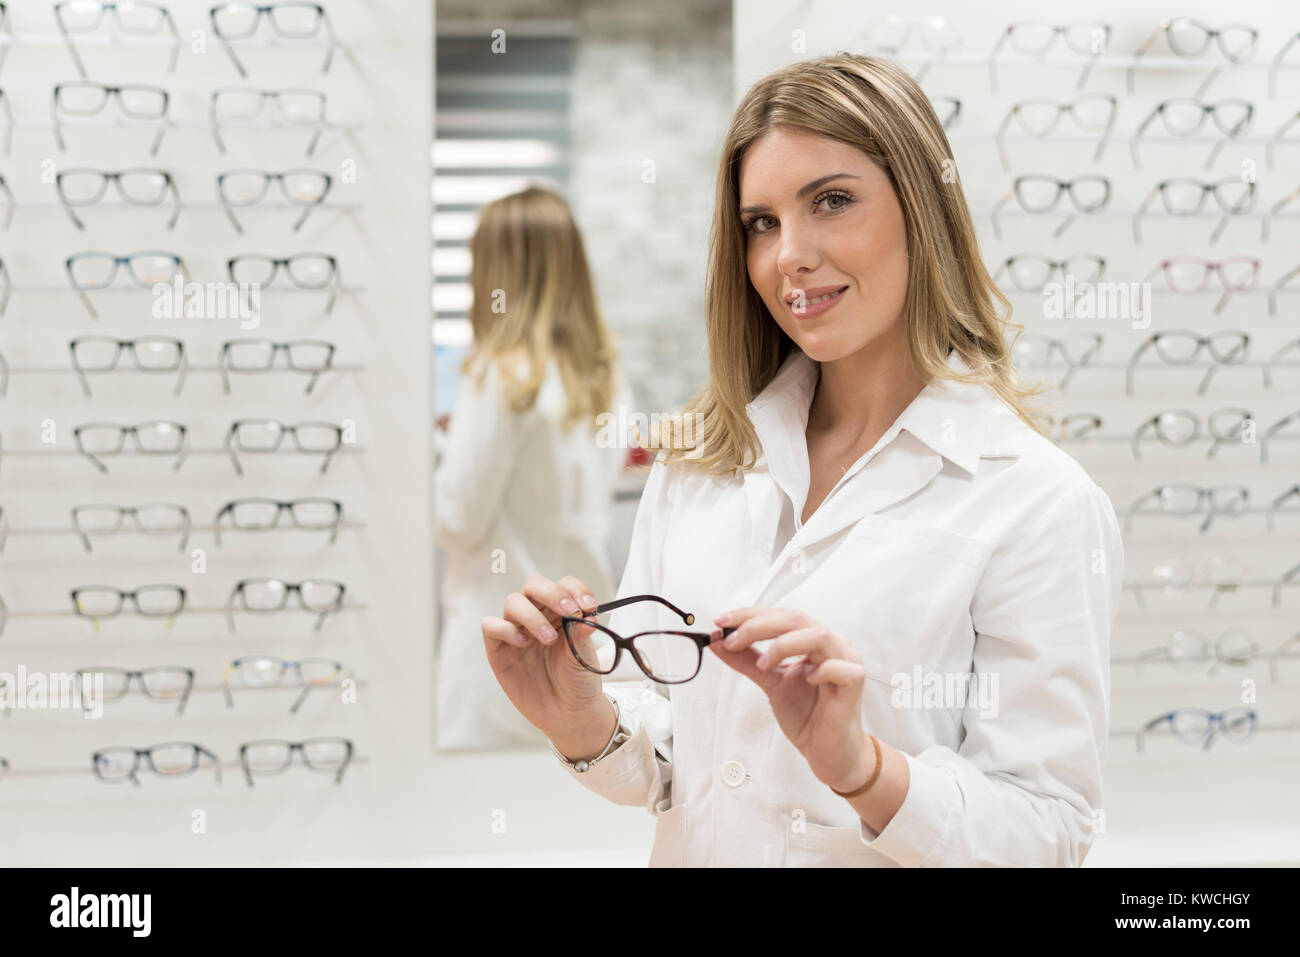 Optometrist woman looking glassea at display in optical store with lab clothing - Stock Image